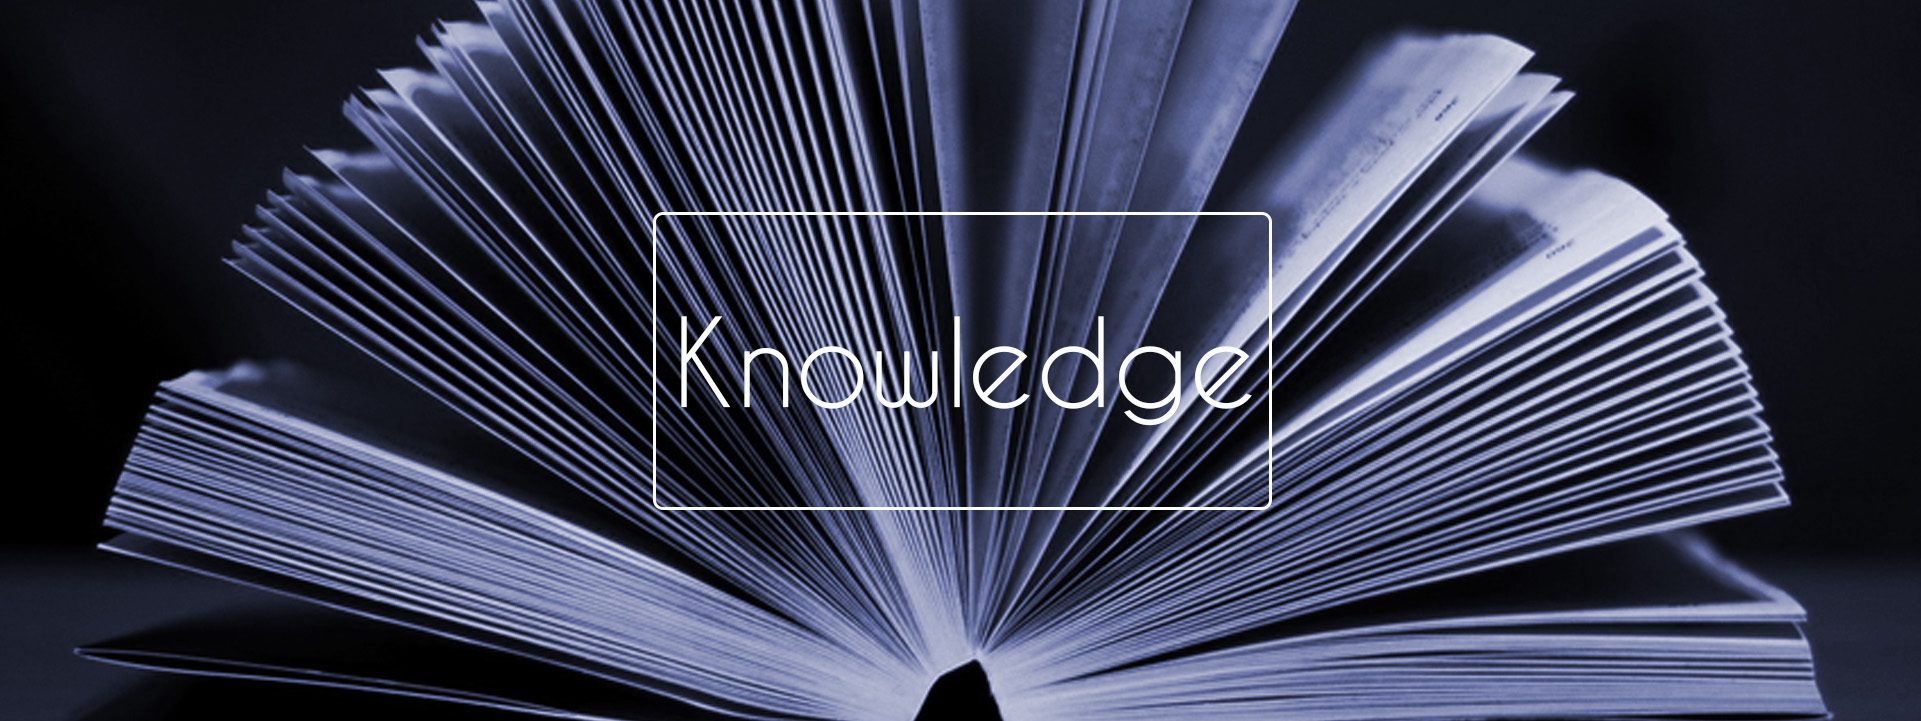 KnowledgeSlider